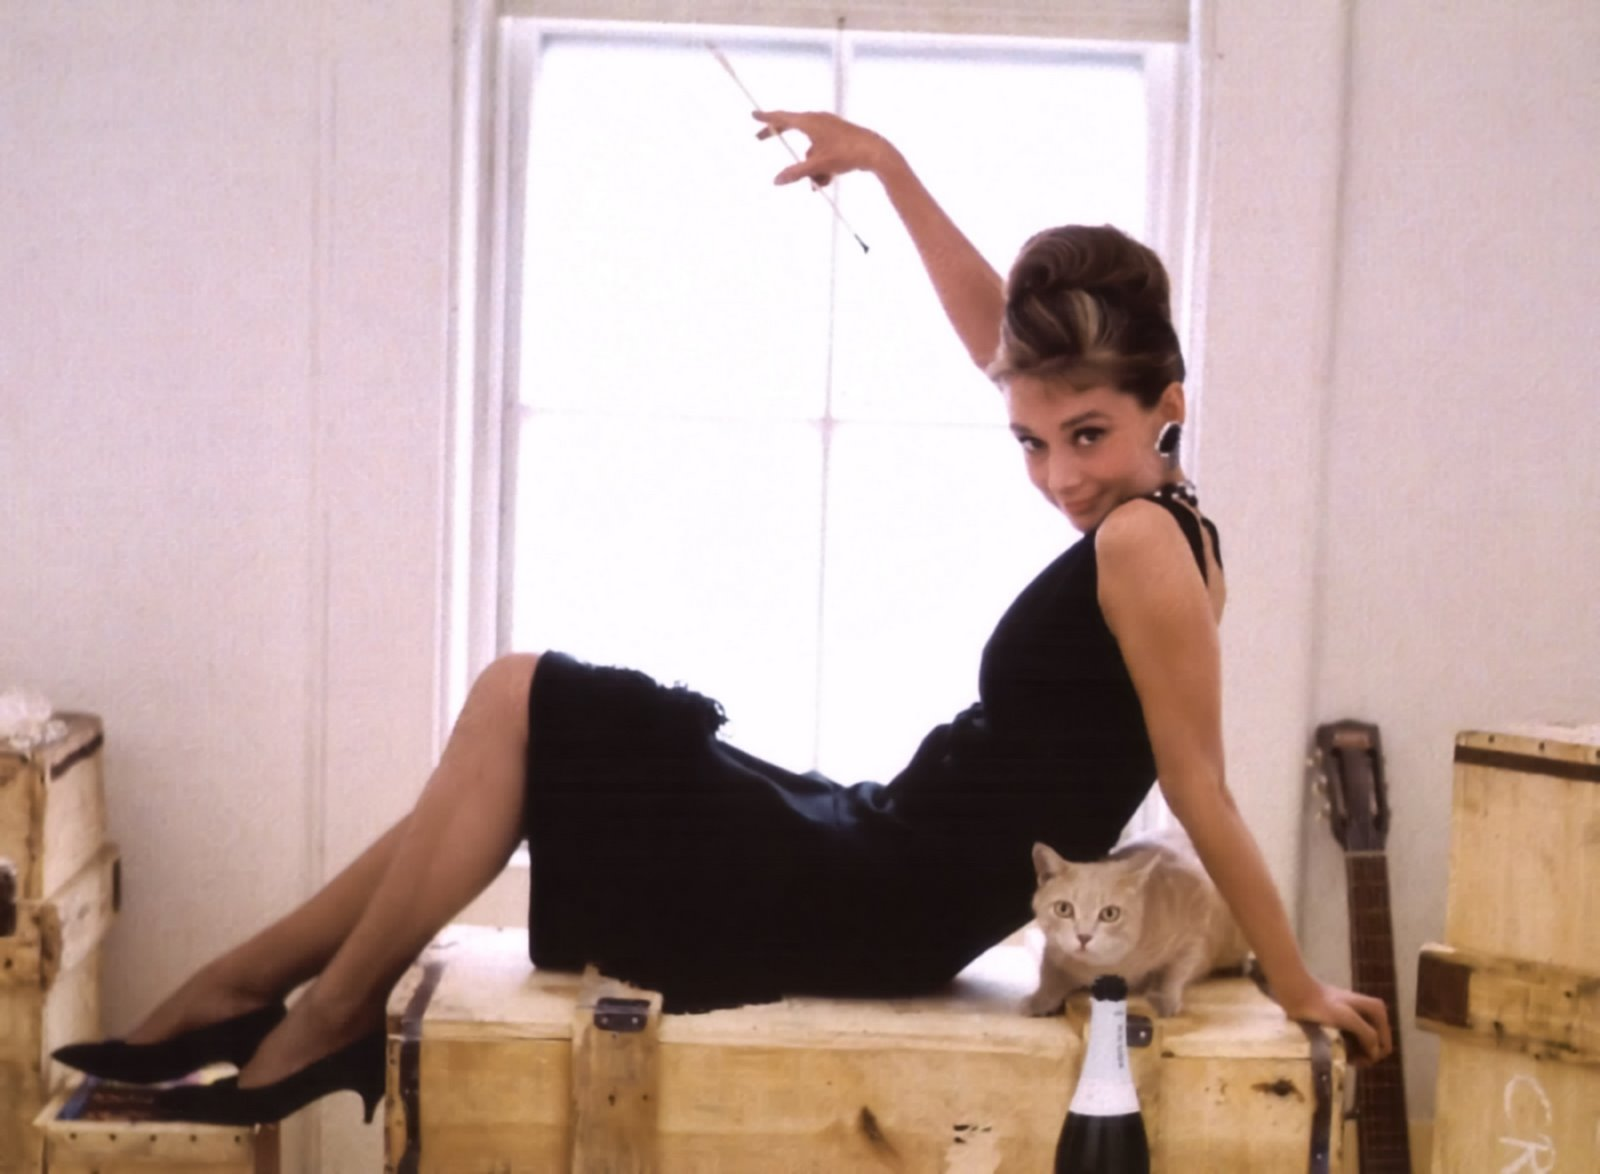 [Annex+-+Hepburn,+Audrey+(Breakfast+at+Tiffany's)_02.jpg]